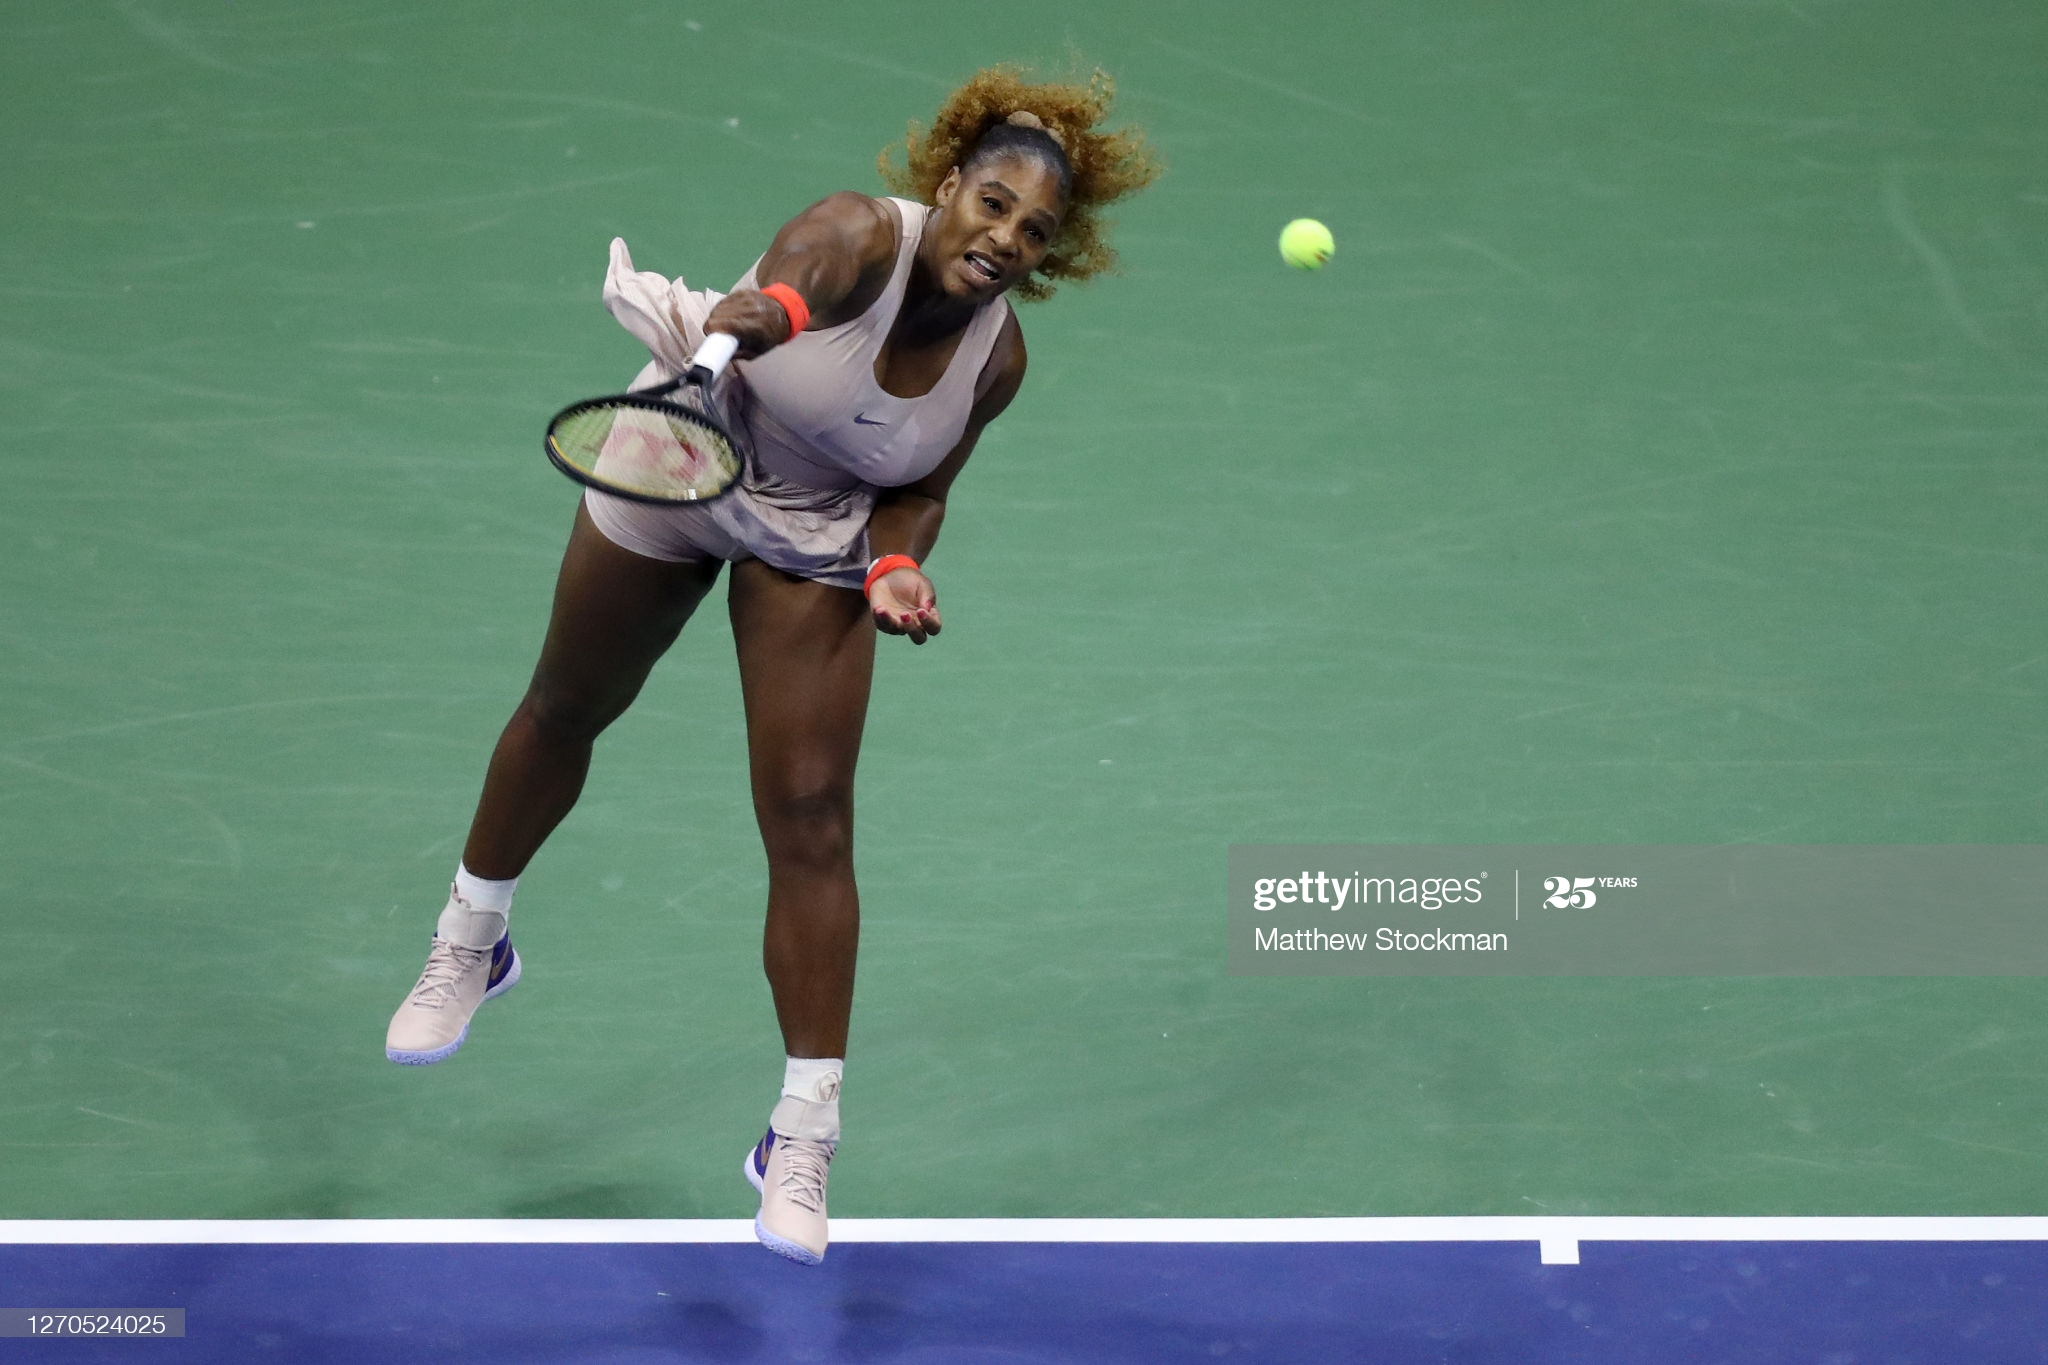 serena day 4 us open 2020.2